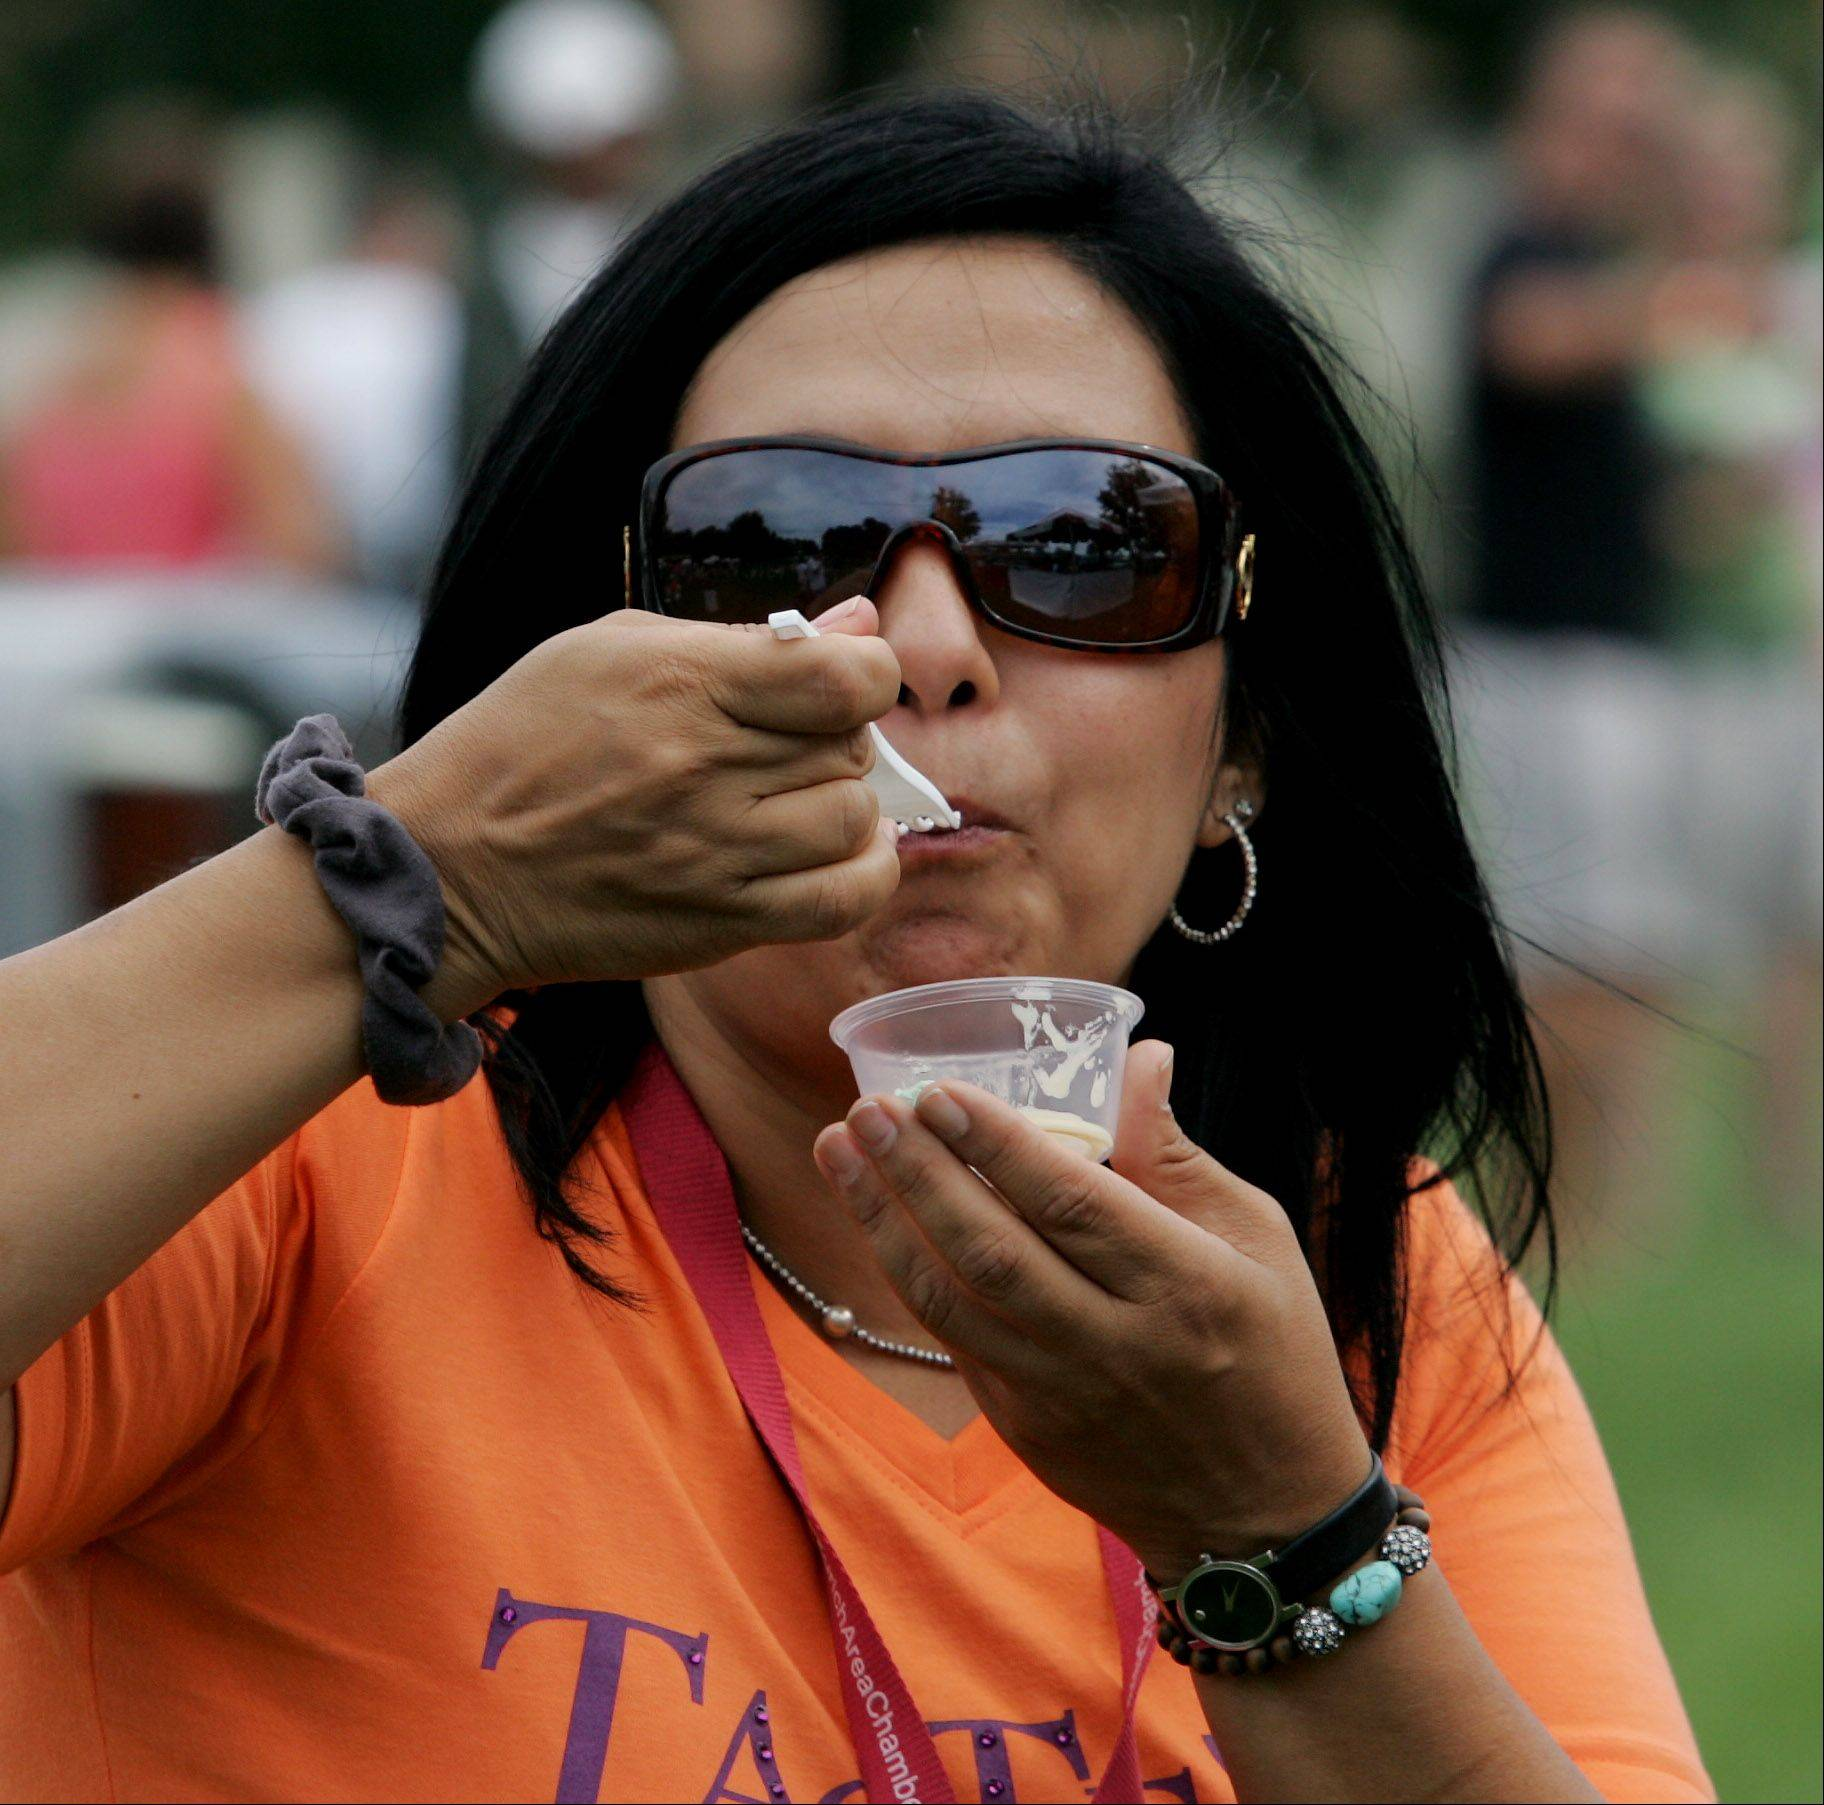 Hanan Hafez of Lake Zurich tastes the Chicken Beurre Blanc from On Occasion Catering during the 5th Annual Taste of the Towns Sunday at Paulus Park in Lake Zurich.